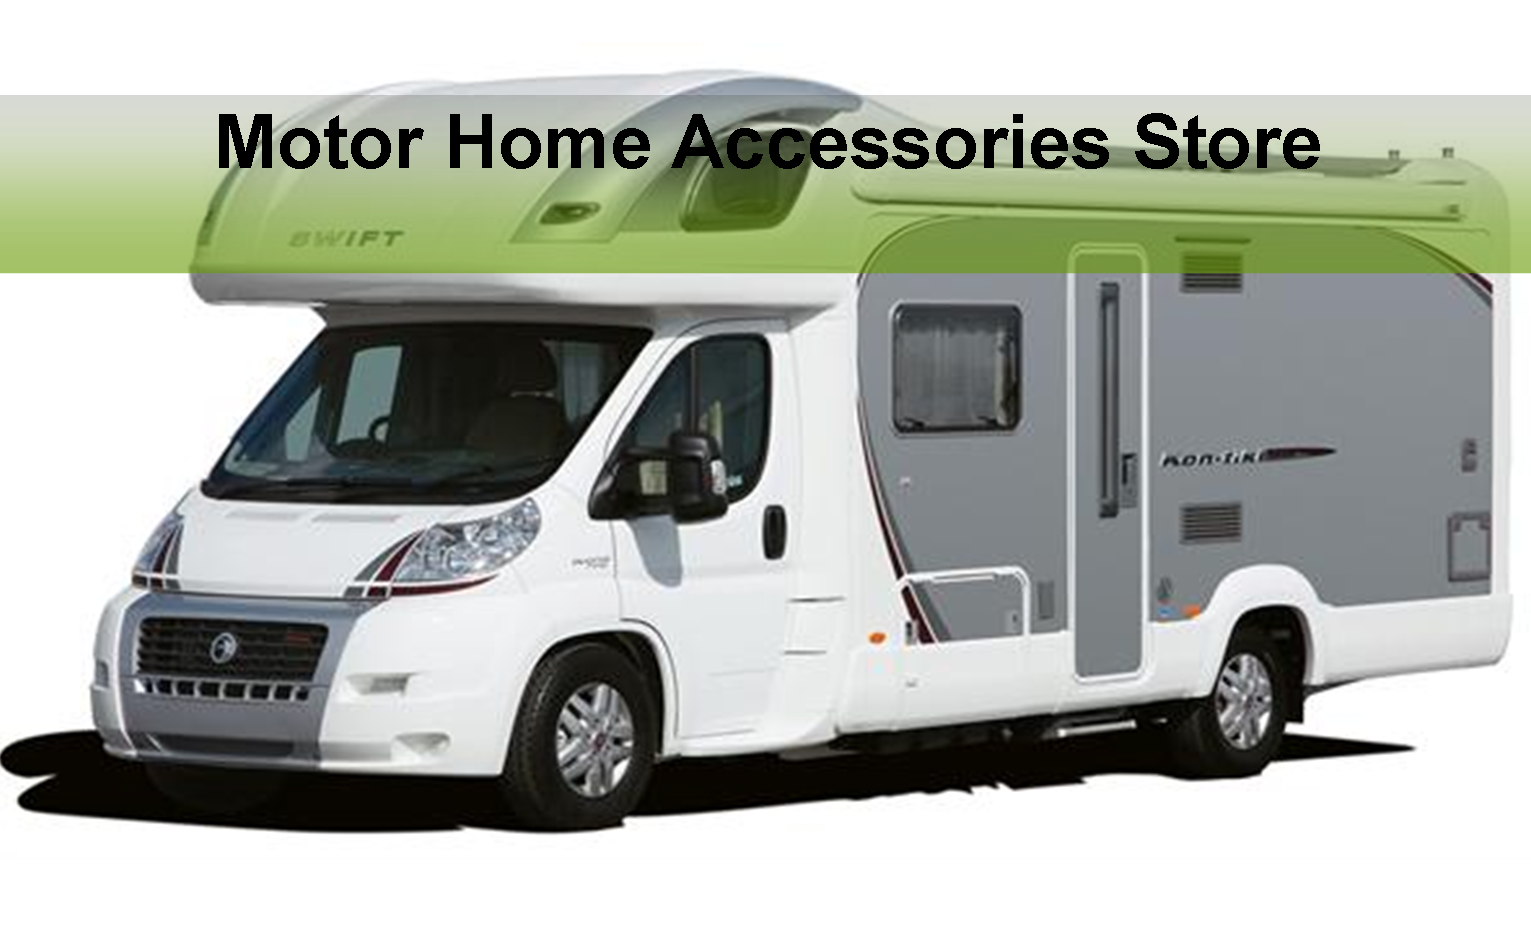 https://motorhomeshop.ie